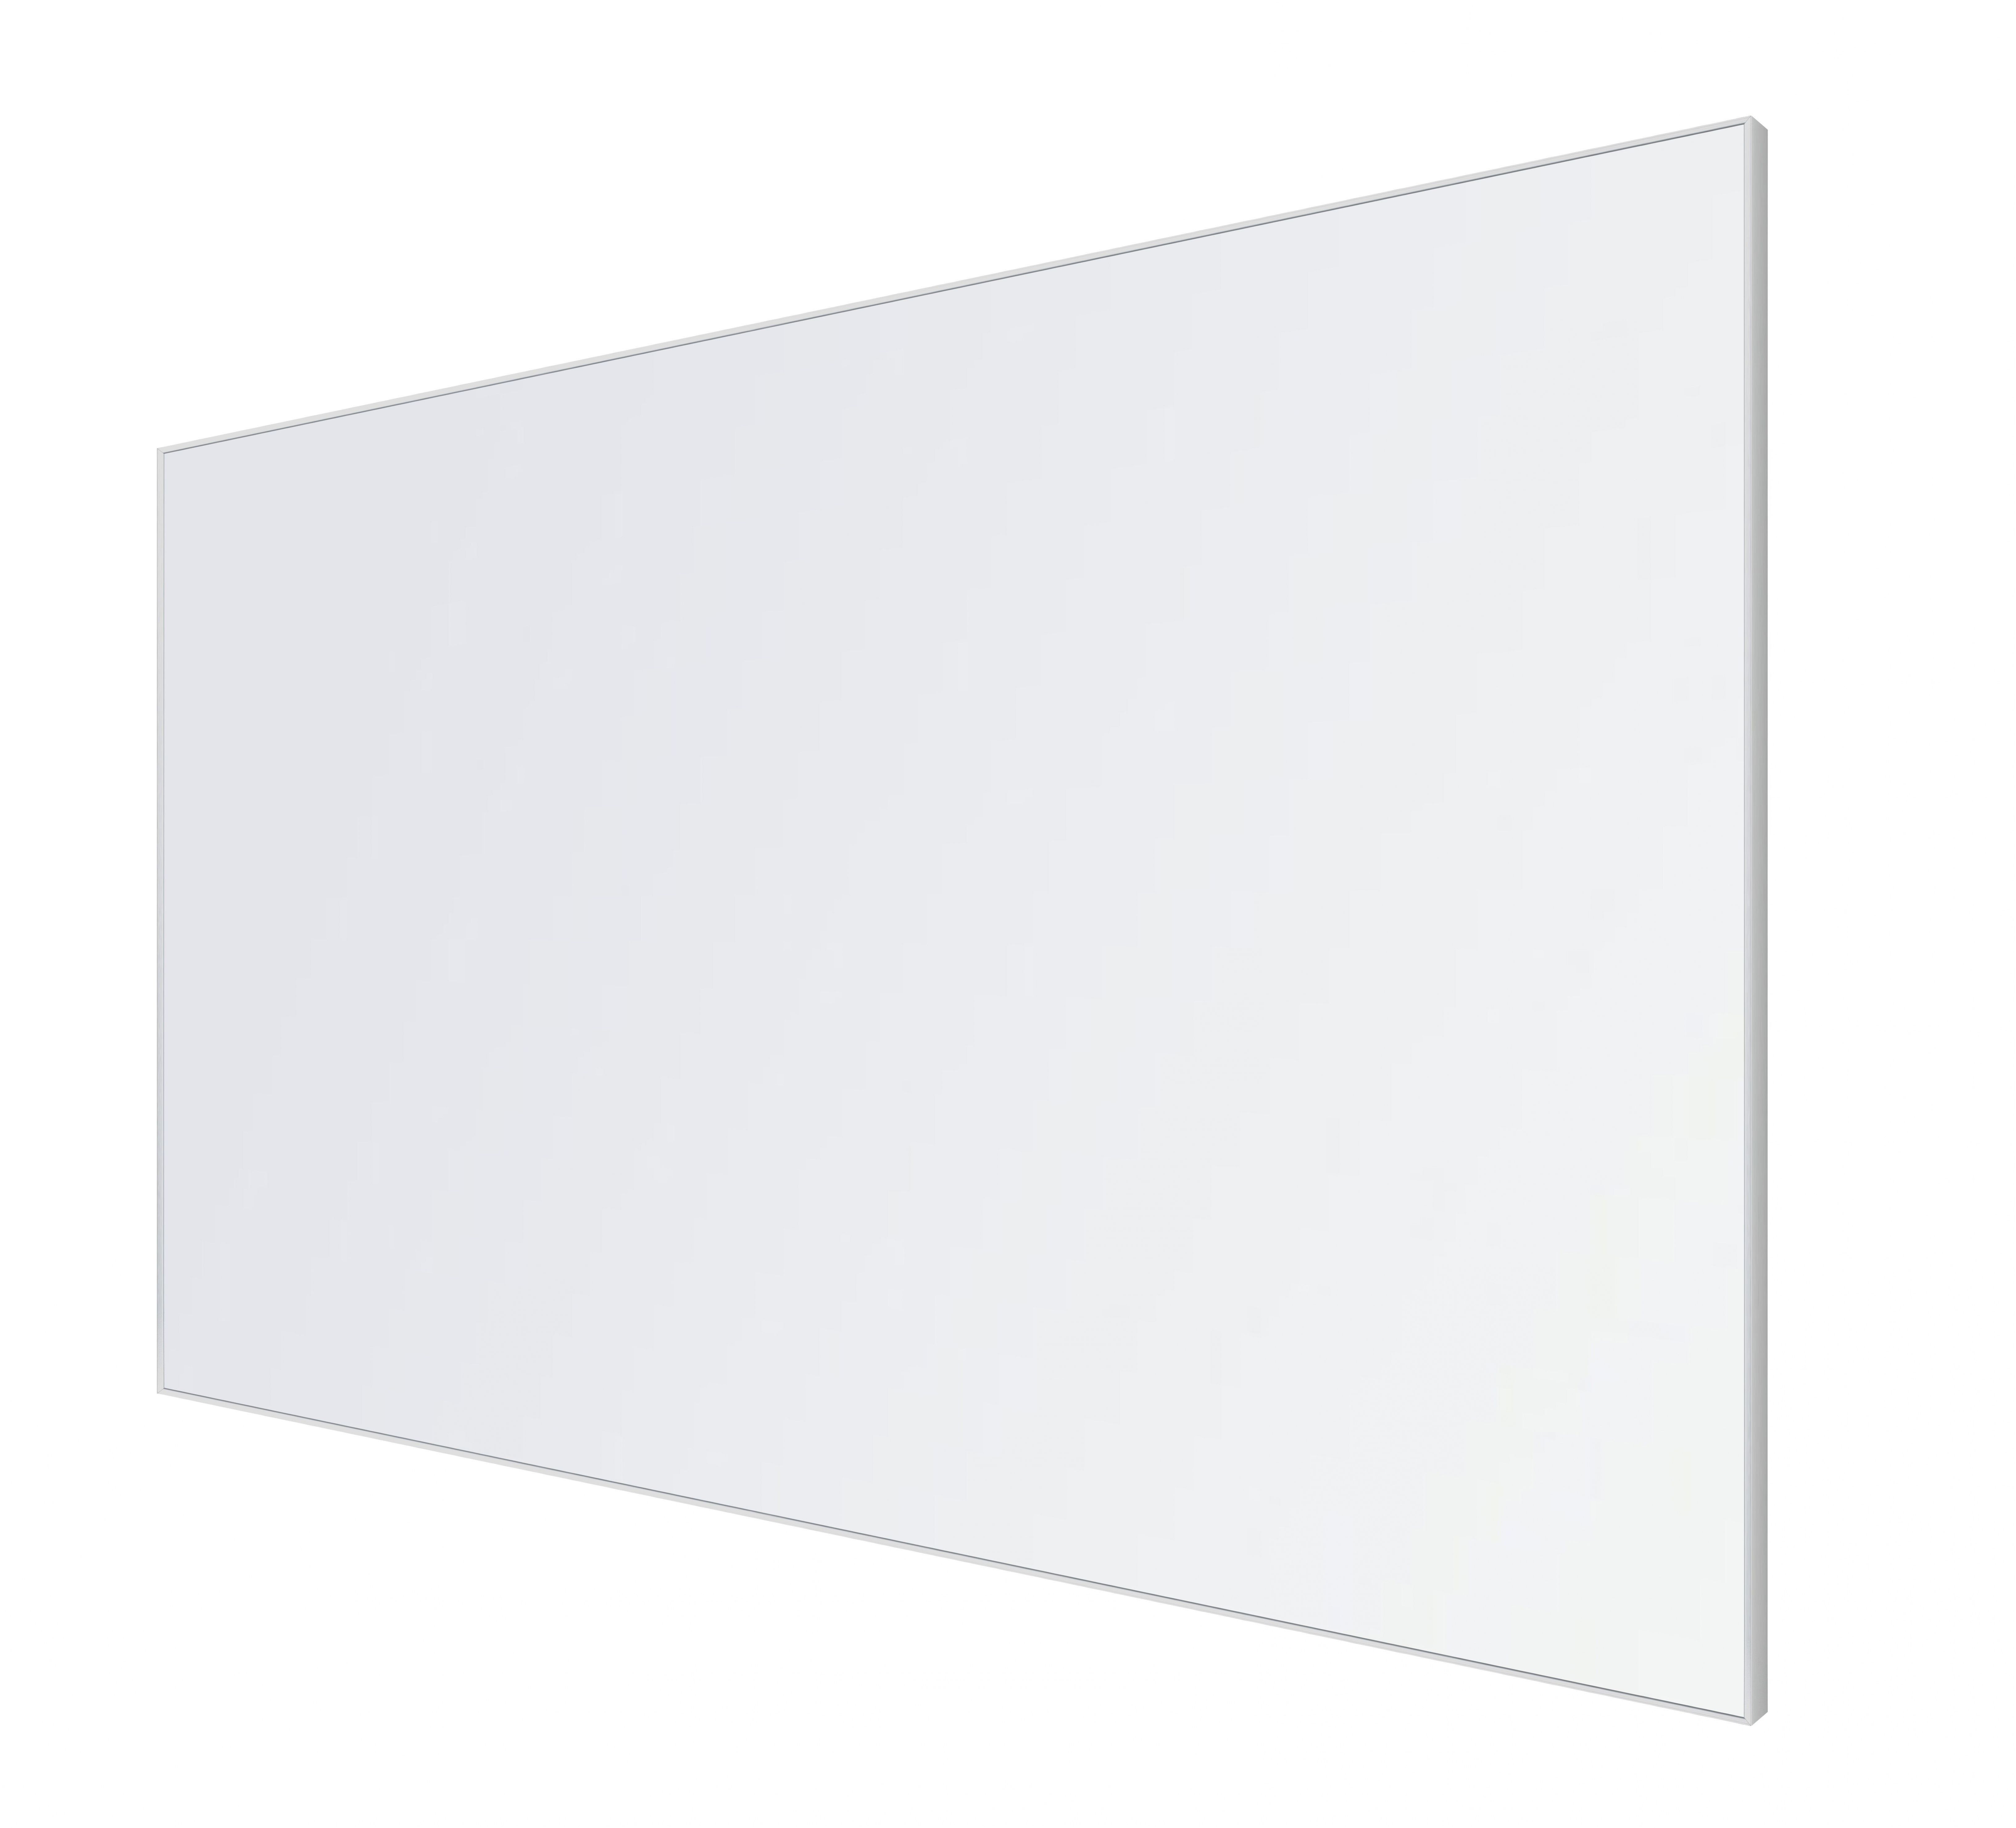 Commercial Whiteboard LX6000 Frame